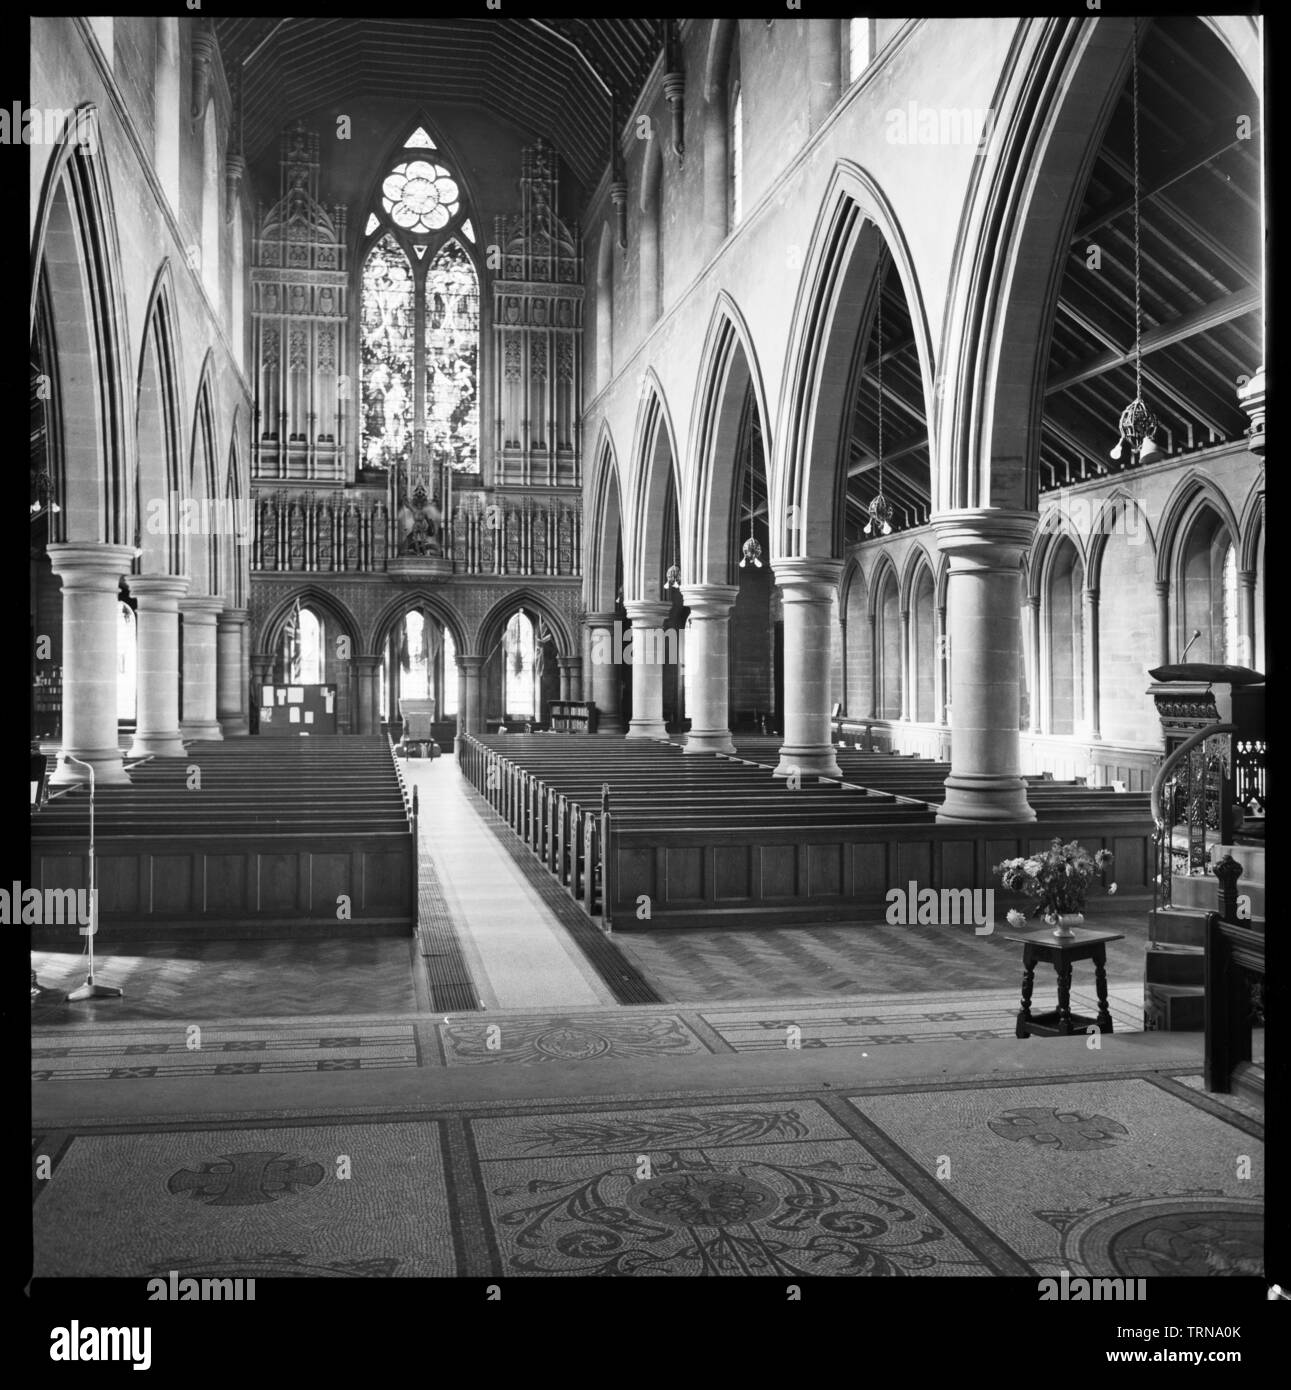 St George's Church, St George's Close, Jesmond, Newcastle upon Tyne, c1955-c1980. An interior view of the chancel in St George's Church, showing the nave and west wall, traceried with Caen stone and with a statue of St George. Completed in 1888, the church was designed by TR Spence, and commissioned by Charles Mitchell. The church has an aisled nave with south porch and west baptistry, an aisled chancel, vestry and south-east tower. The nave is high, and has two arcades of five pointed-headed arches on round piers and pointed clerestory windows above. The west wall has three arches at the base - Stock Image